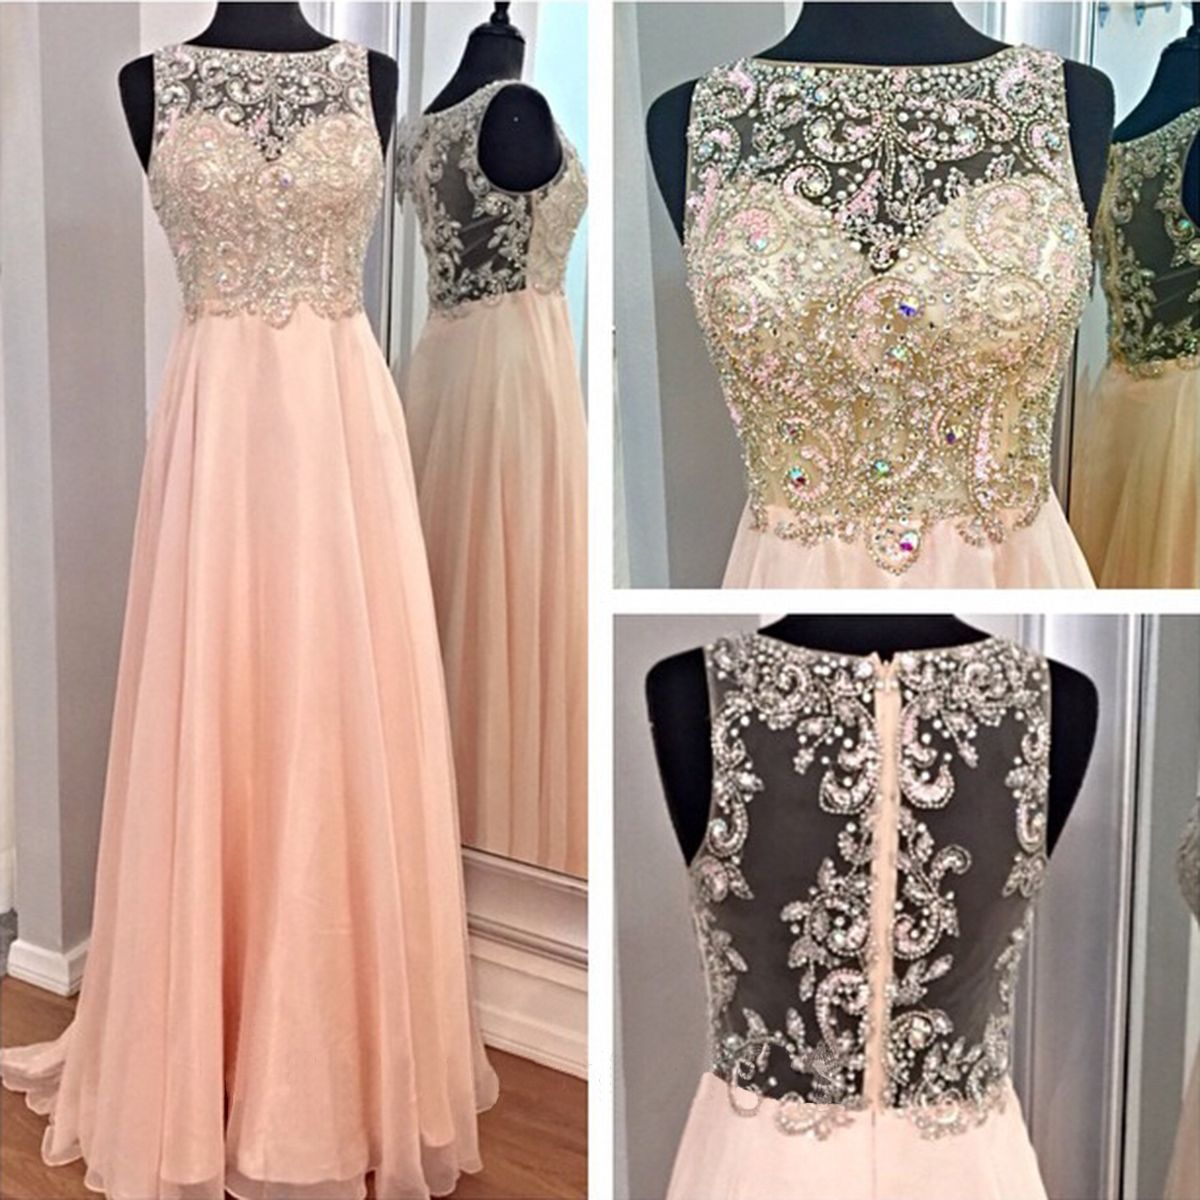 Beading prom dress peach prom dress prom pinterest peach prom